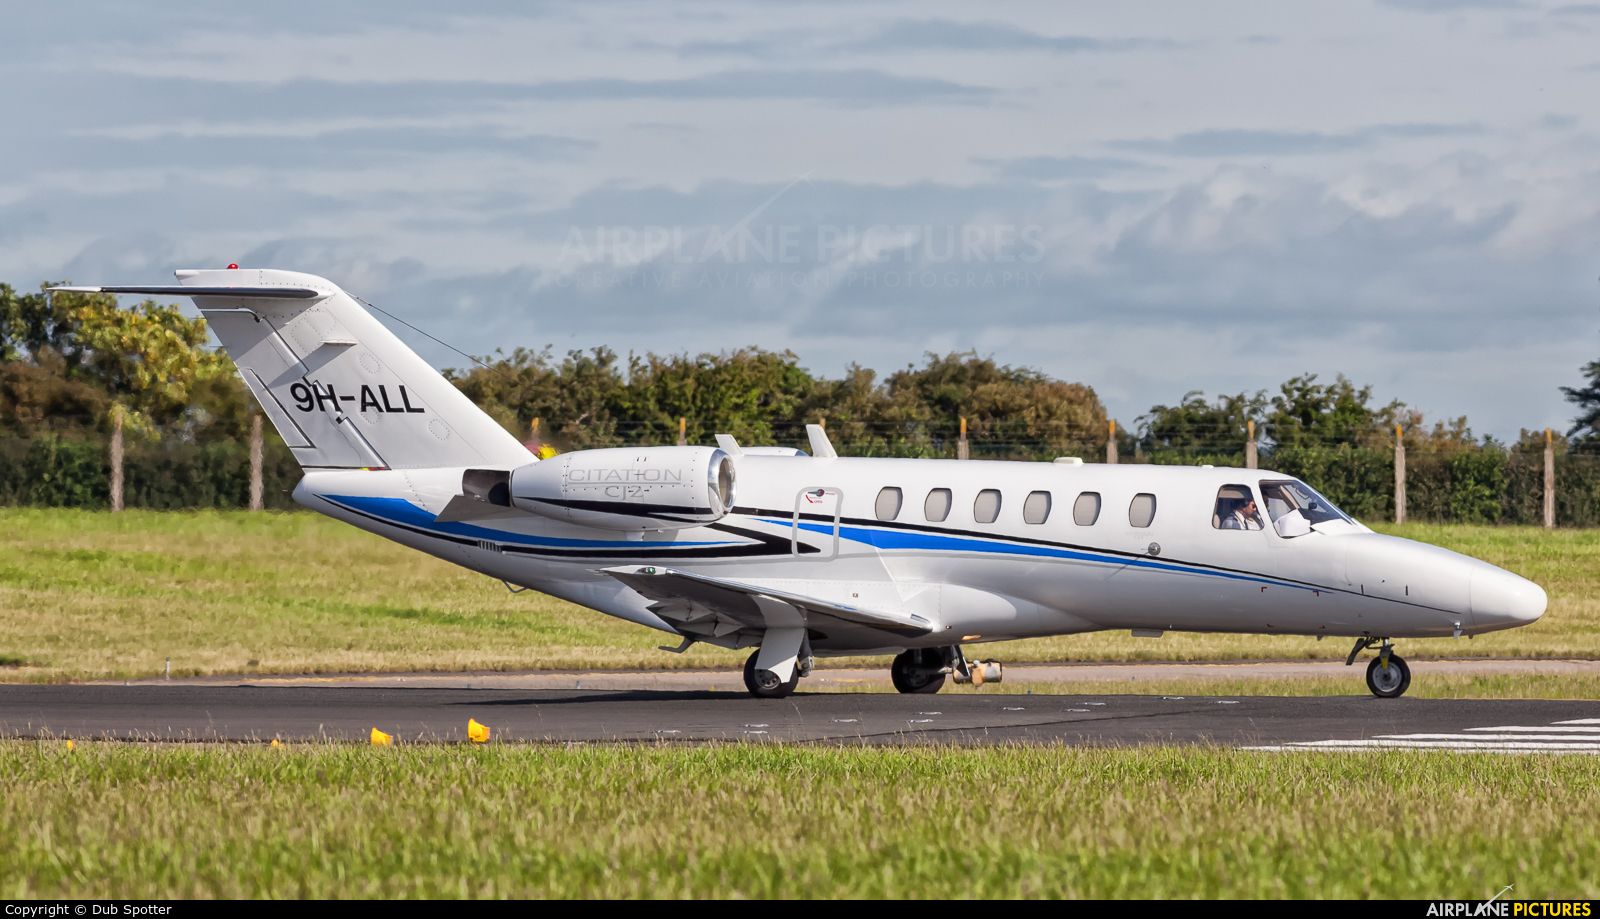 Lux Wing Group 9H-ALL aircraft at Dublin